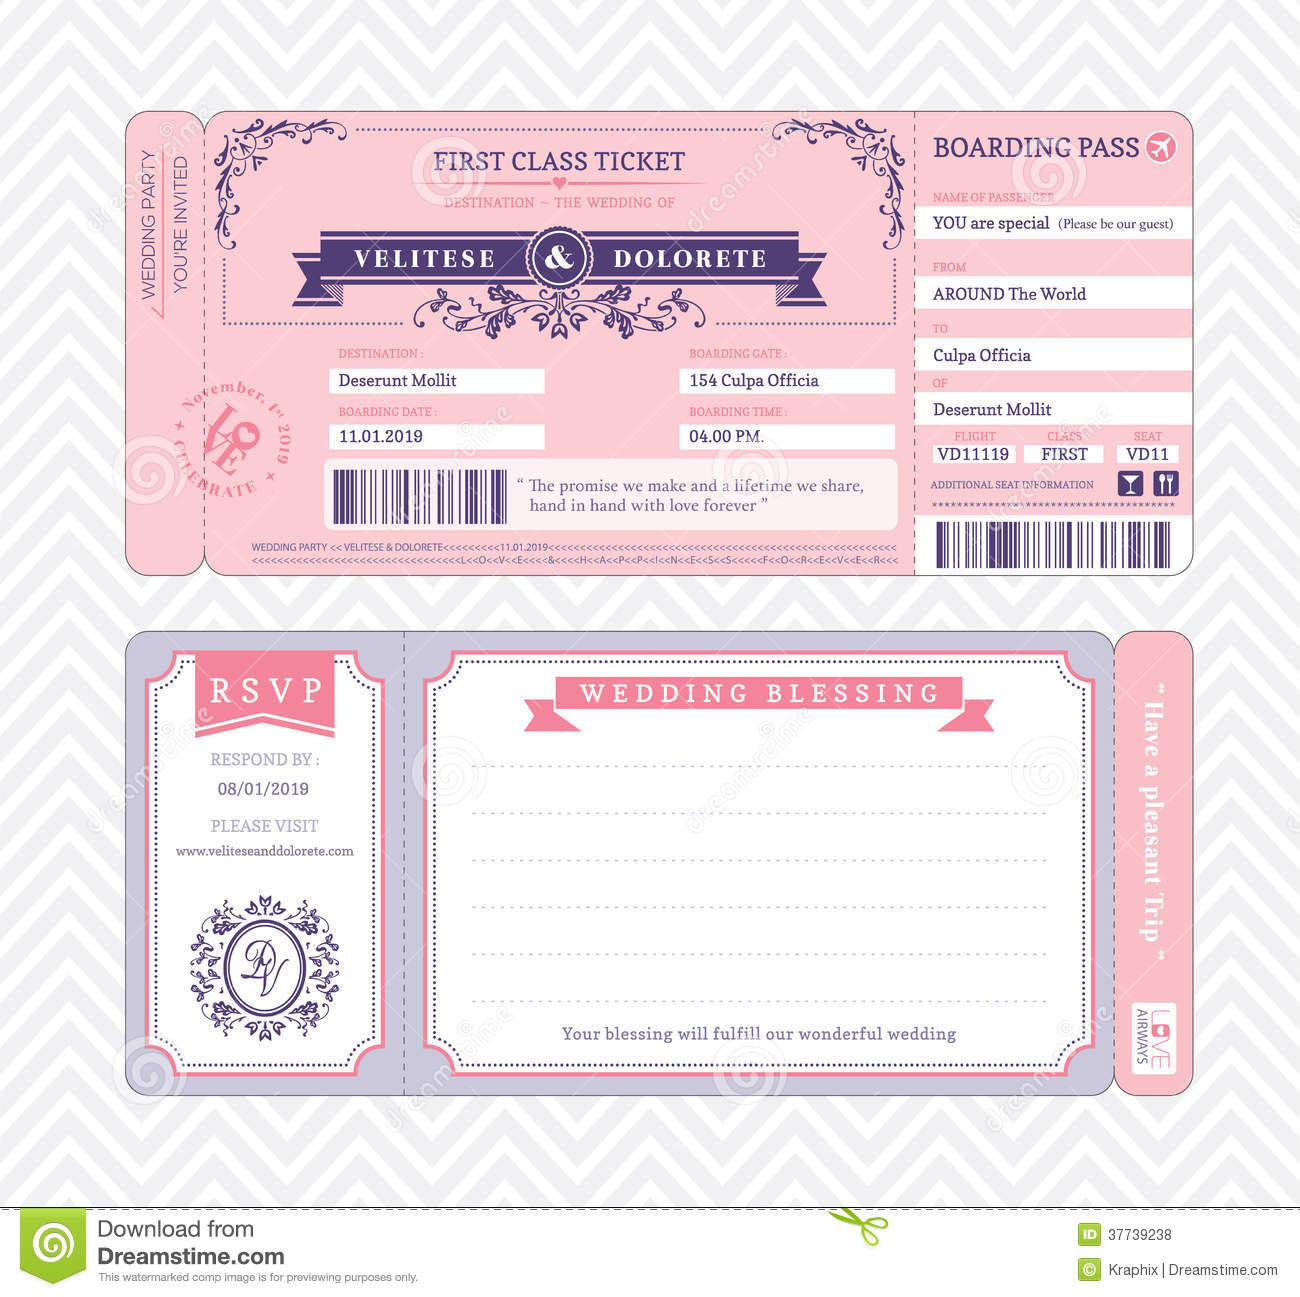 cruise ship boarding pass template